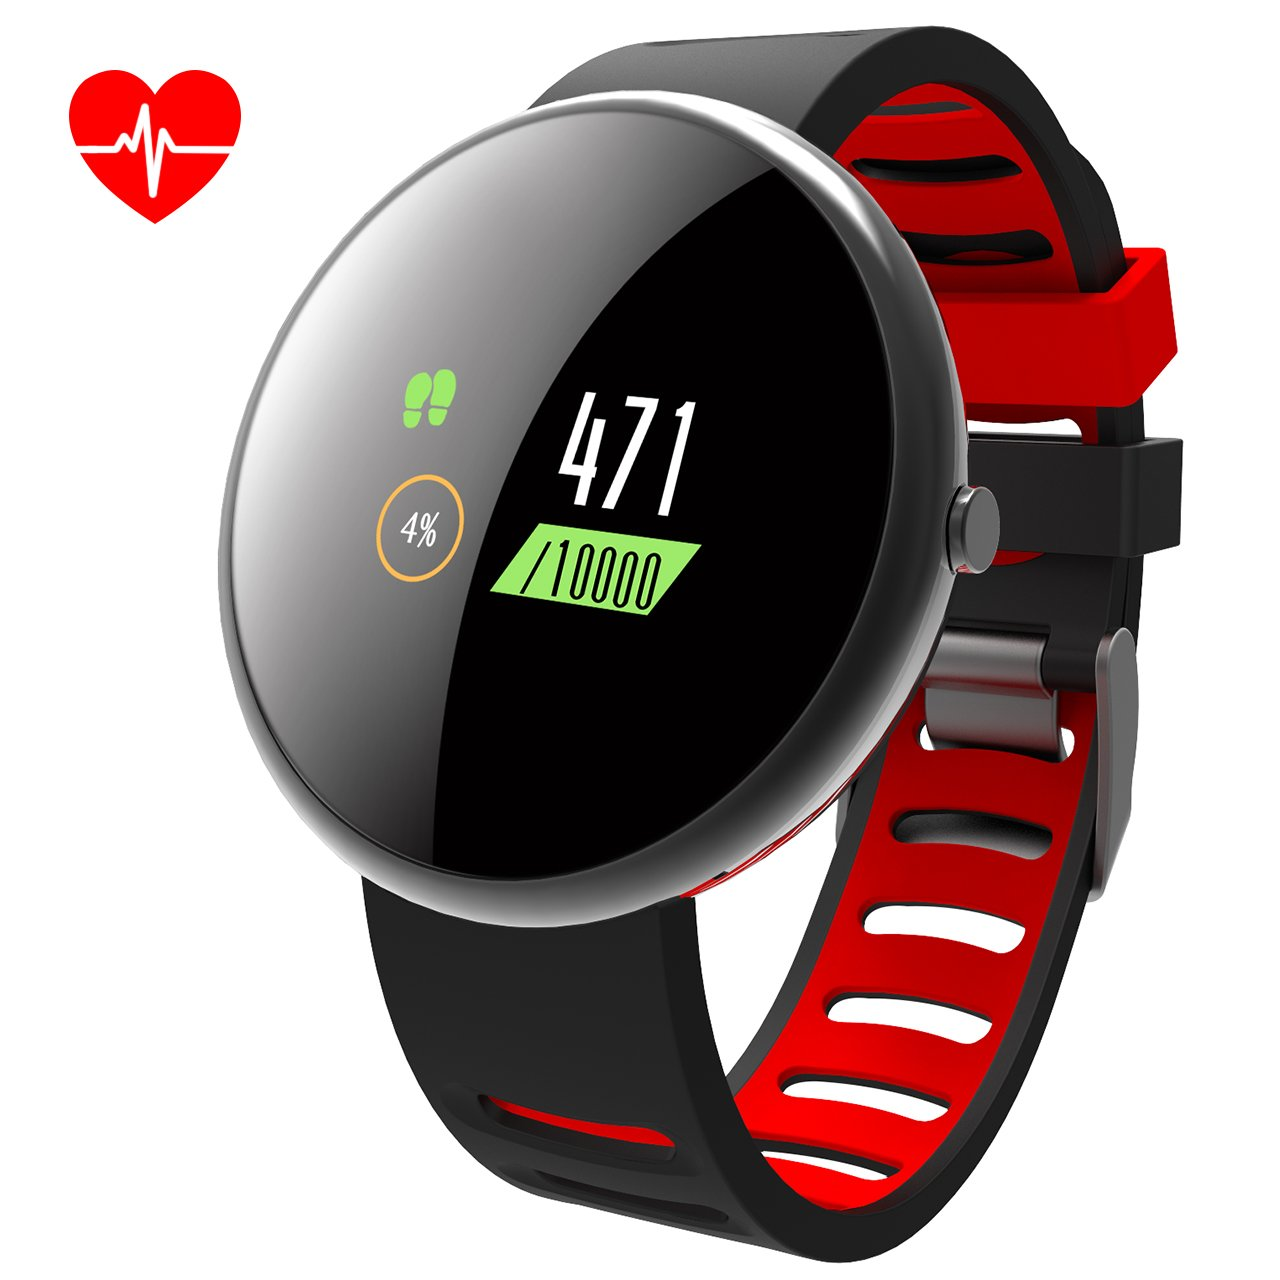 ROADTEC Smart Fitness Tracker Watch with Heart Rate Monitor,2.5D Color Screen IP67 Waterproof Activity Tracker with Calorie Pedometer Sleep Monitor for Kids Men (Black+Red)